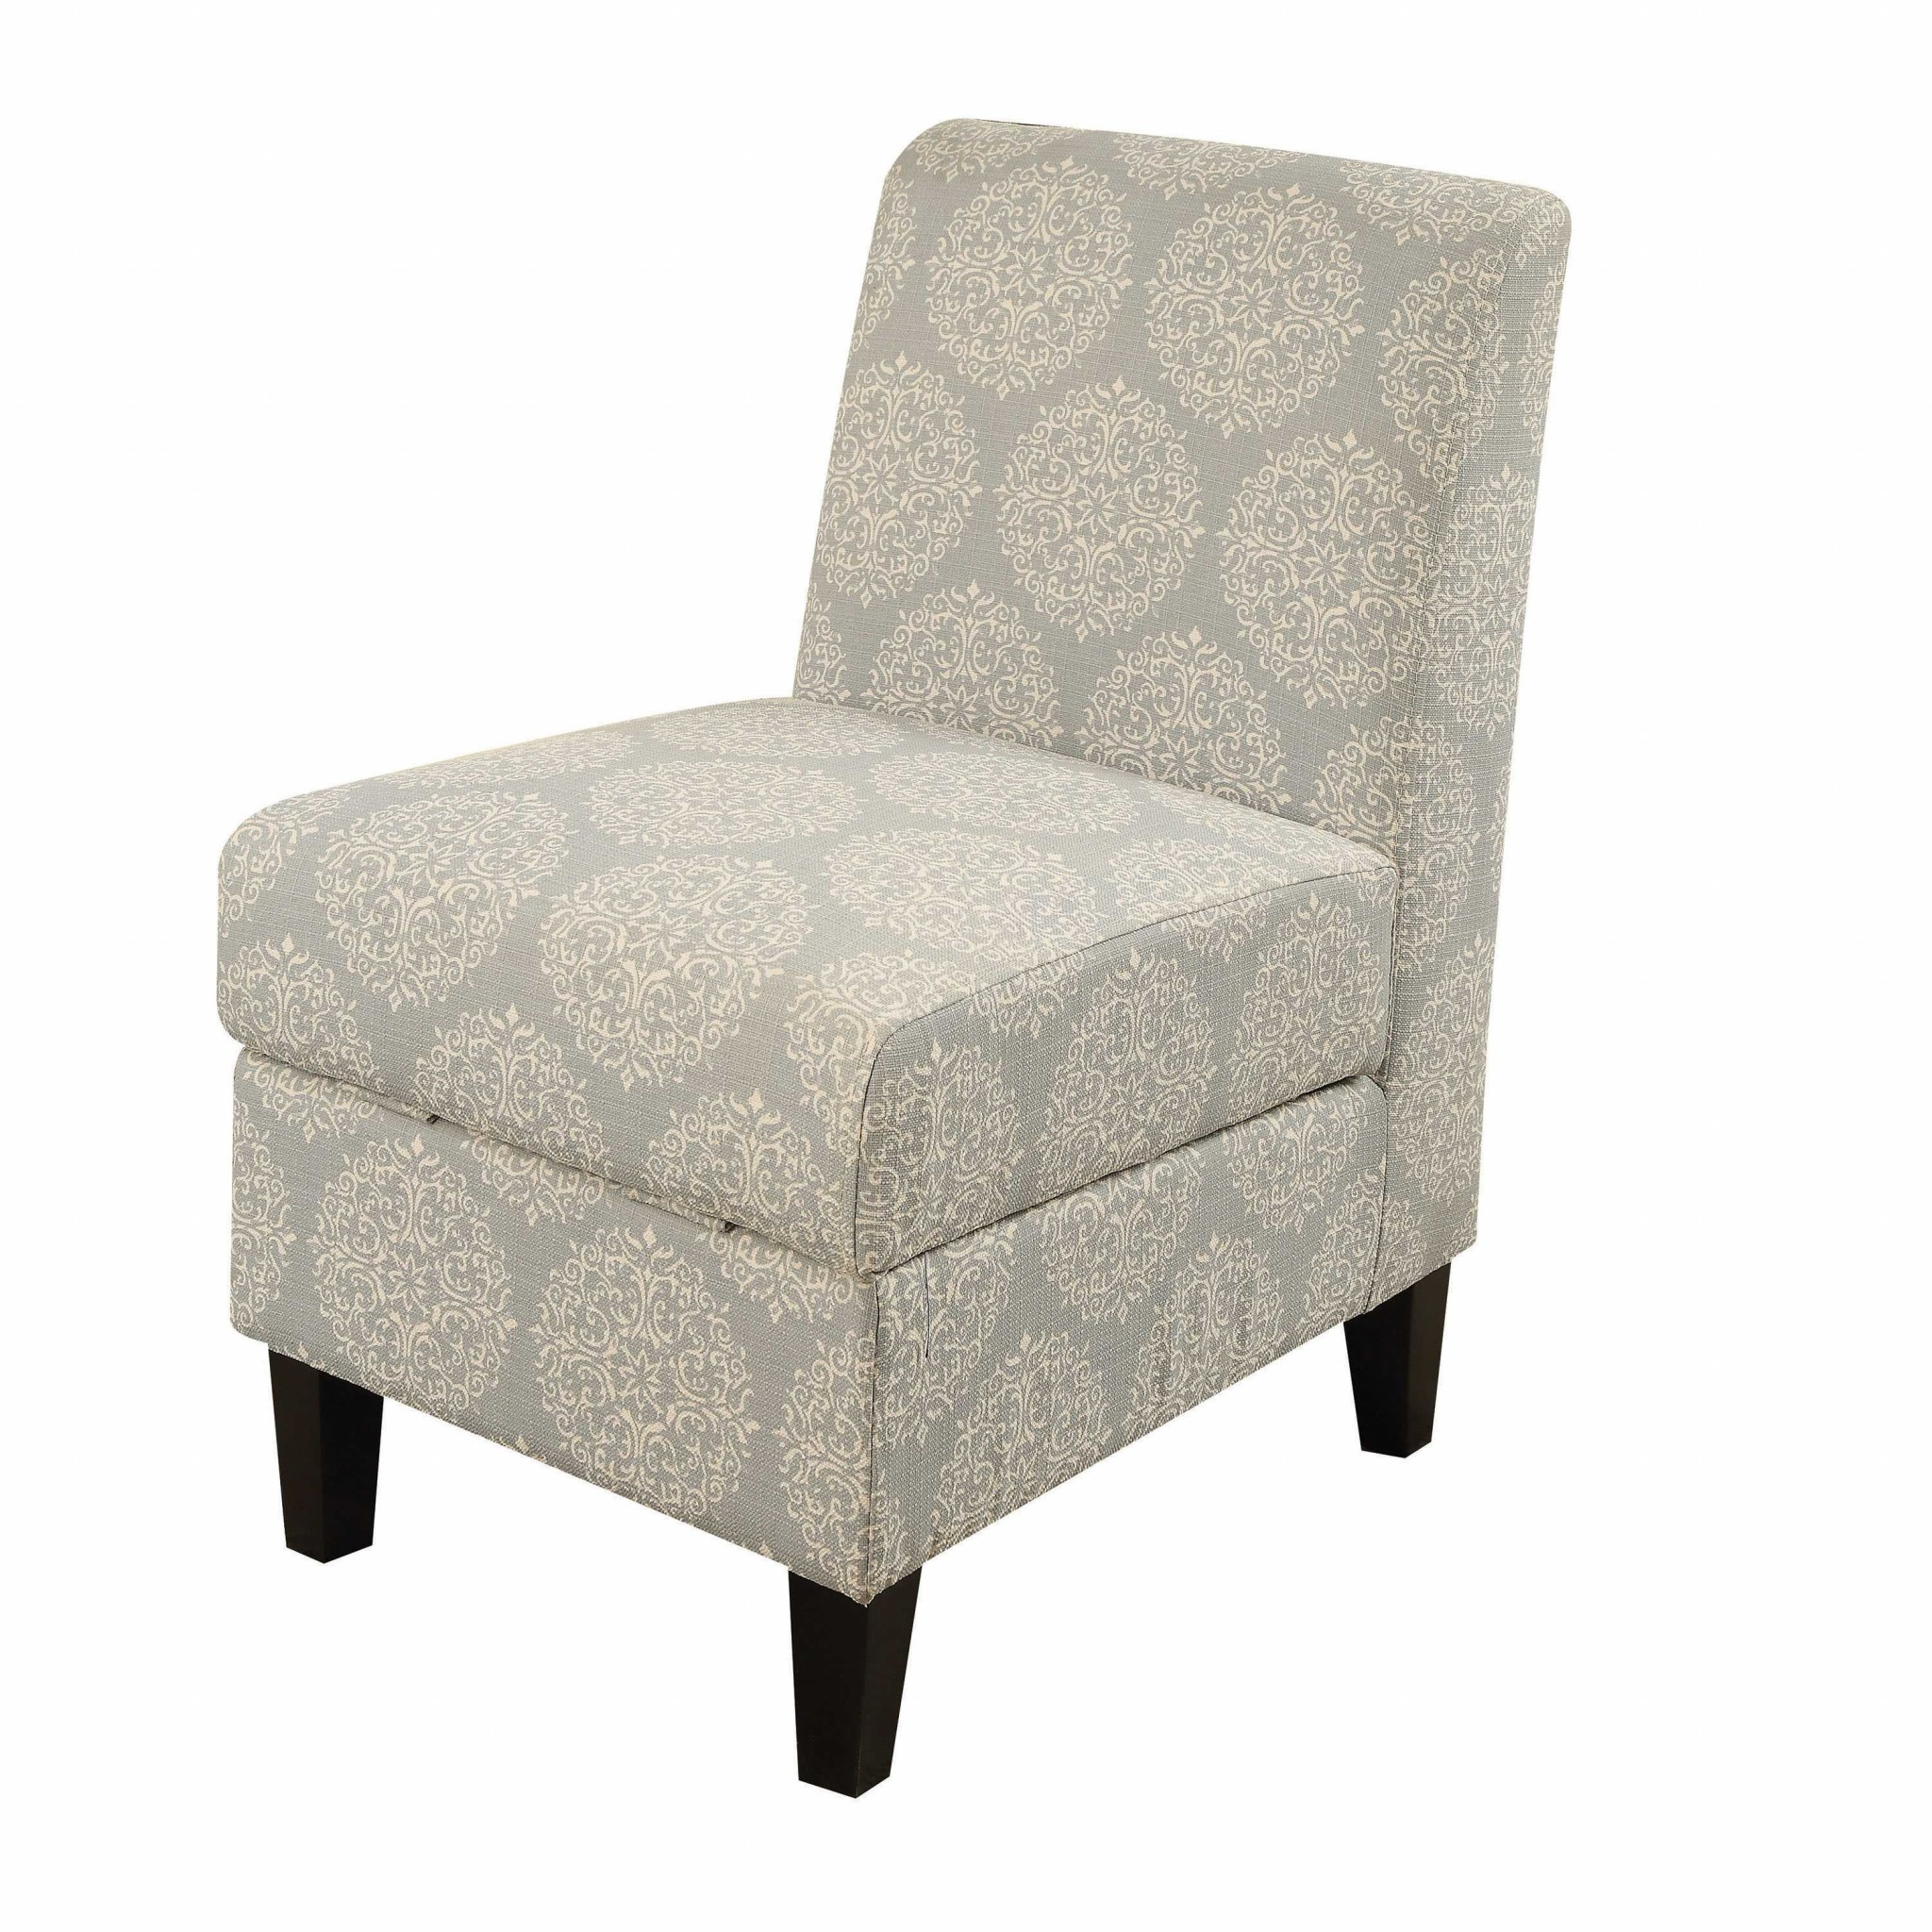 """22"""" X 30"""" X 36"""" Hexagon Pattern Accent Chair With Storage"""